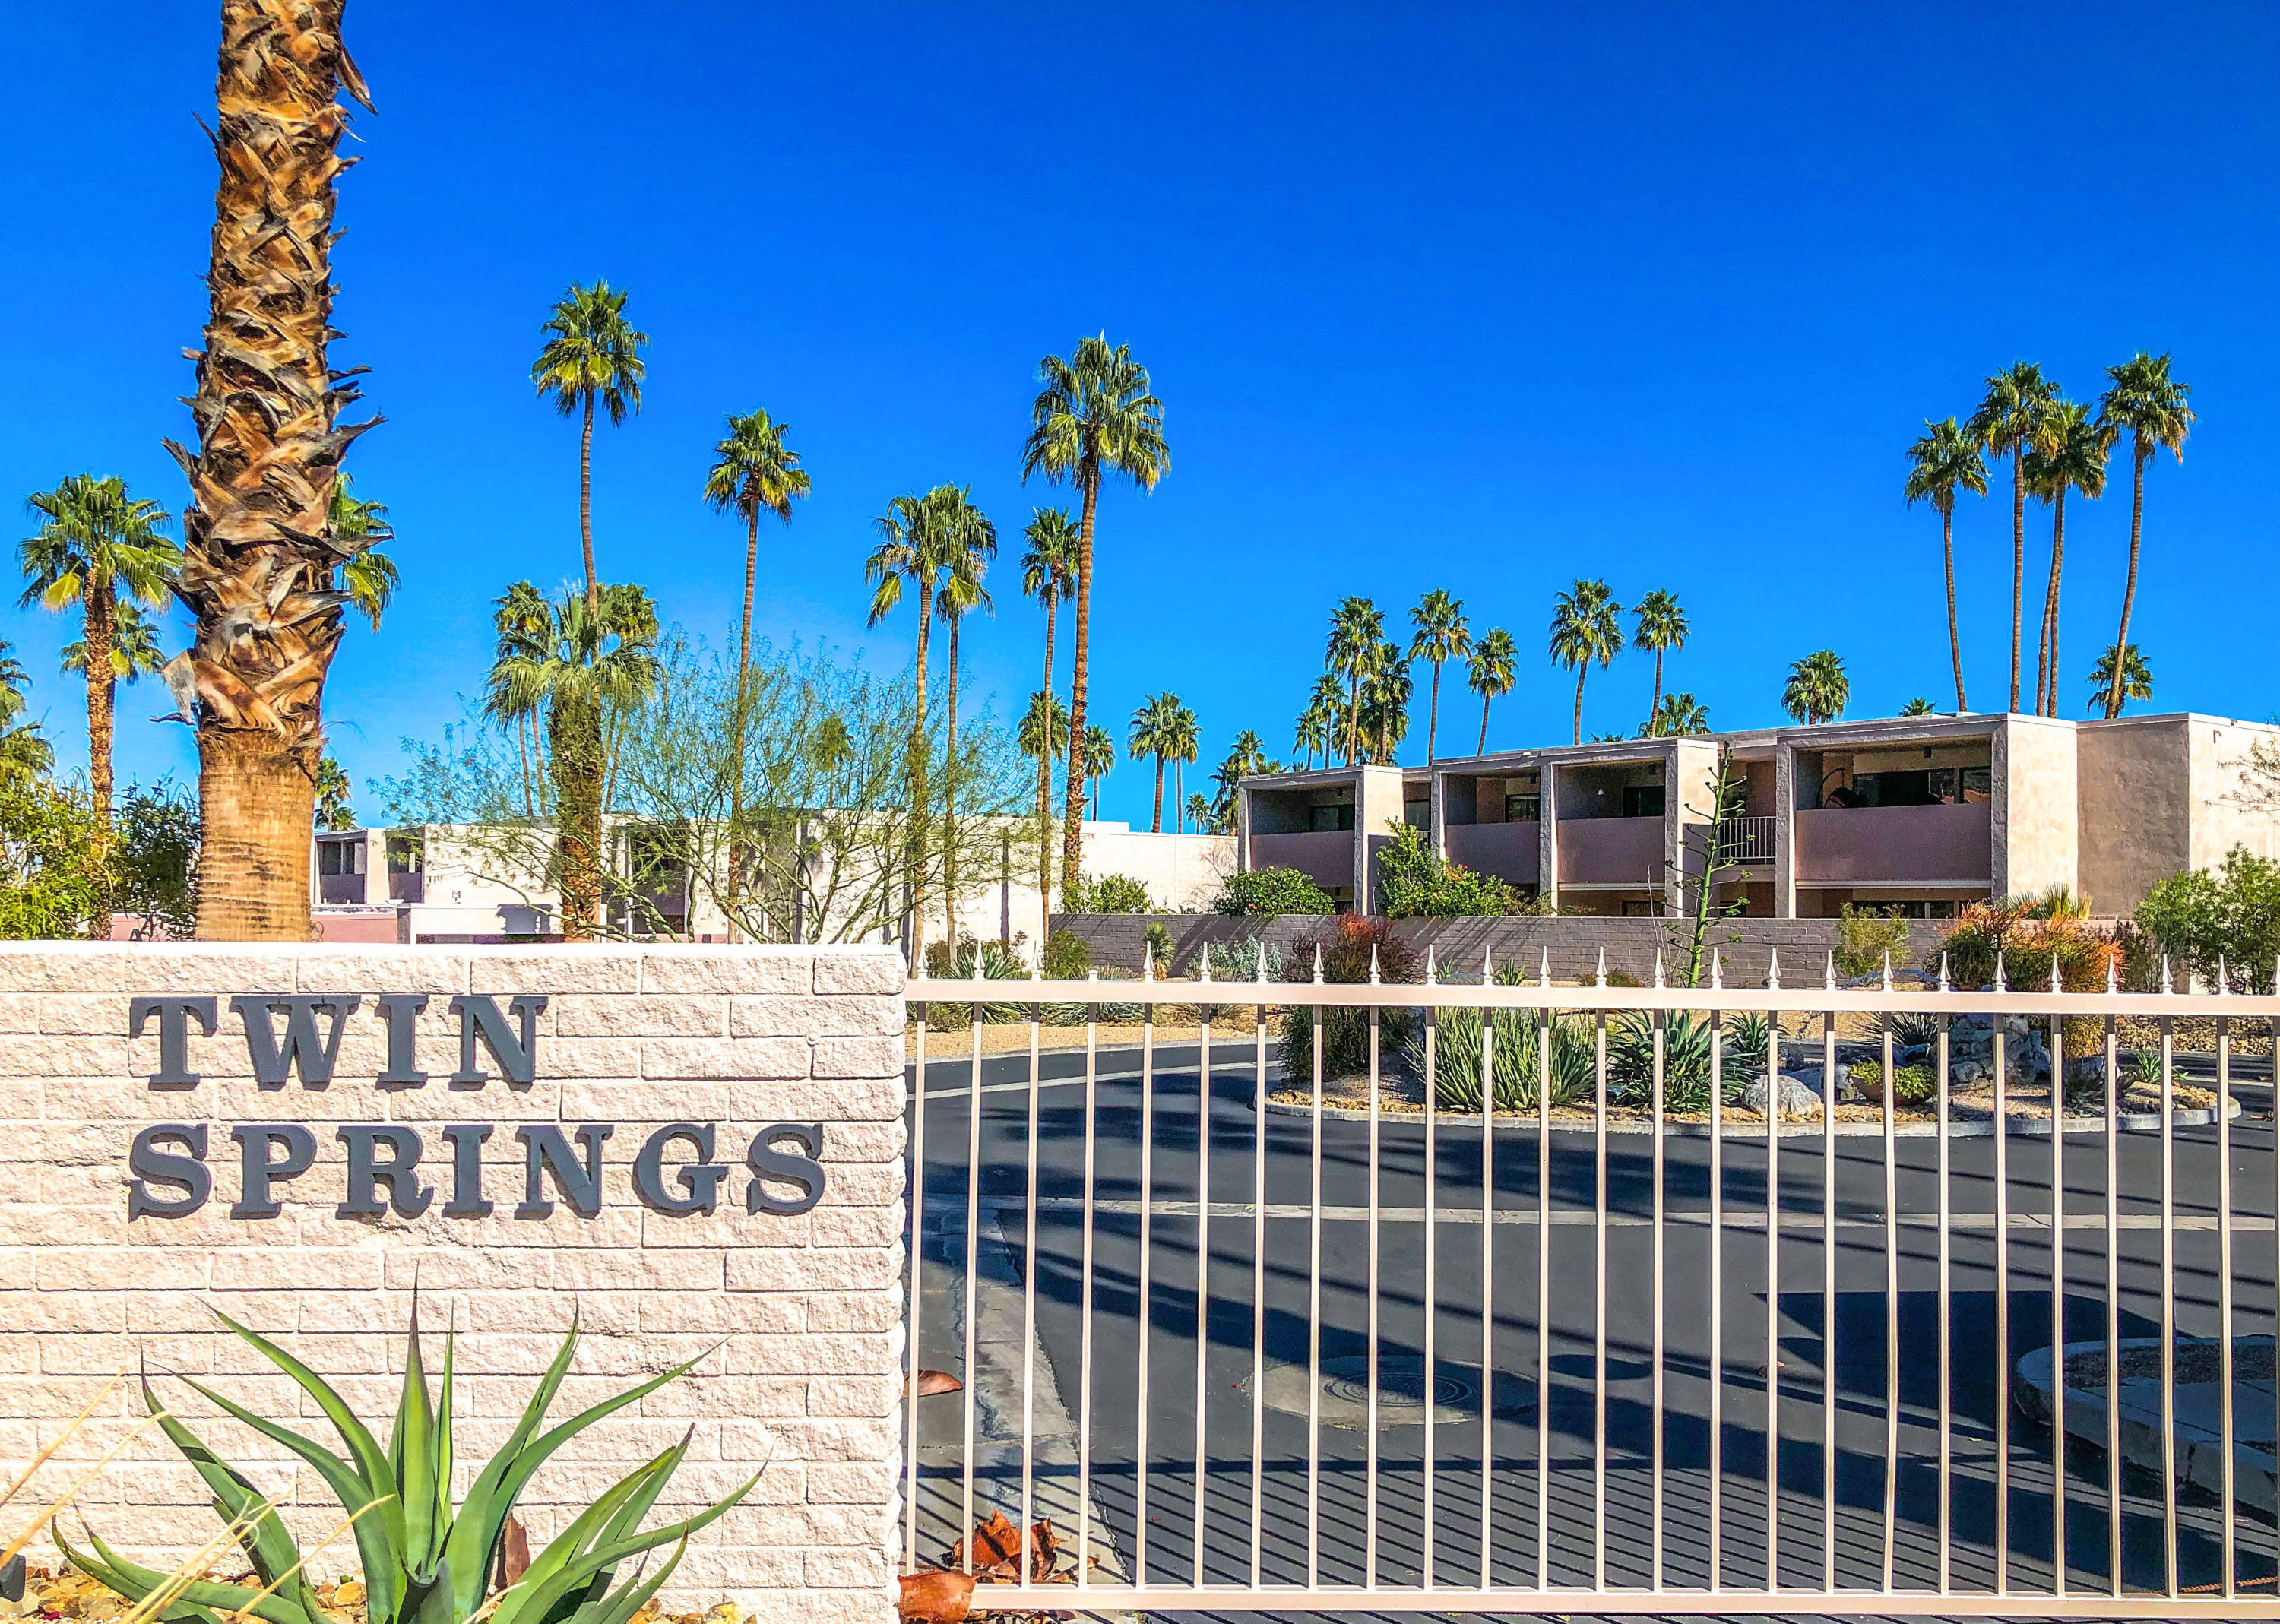 2696 S Sierra Madre F14, Palm Springs, California